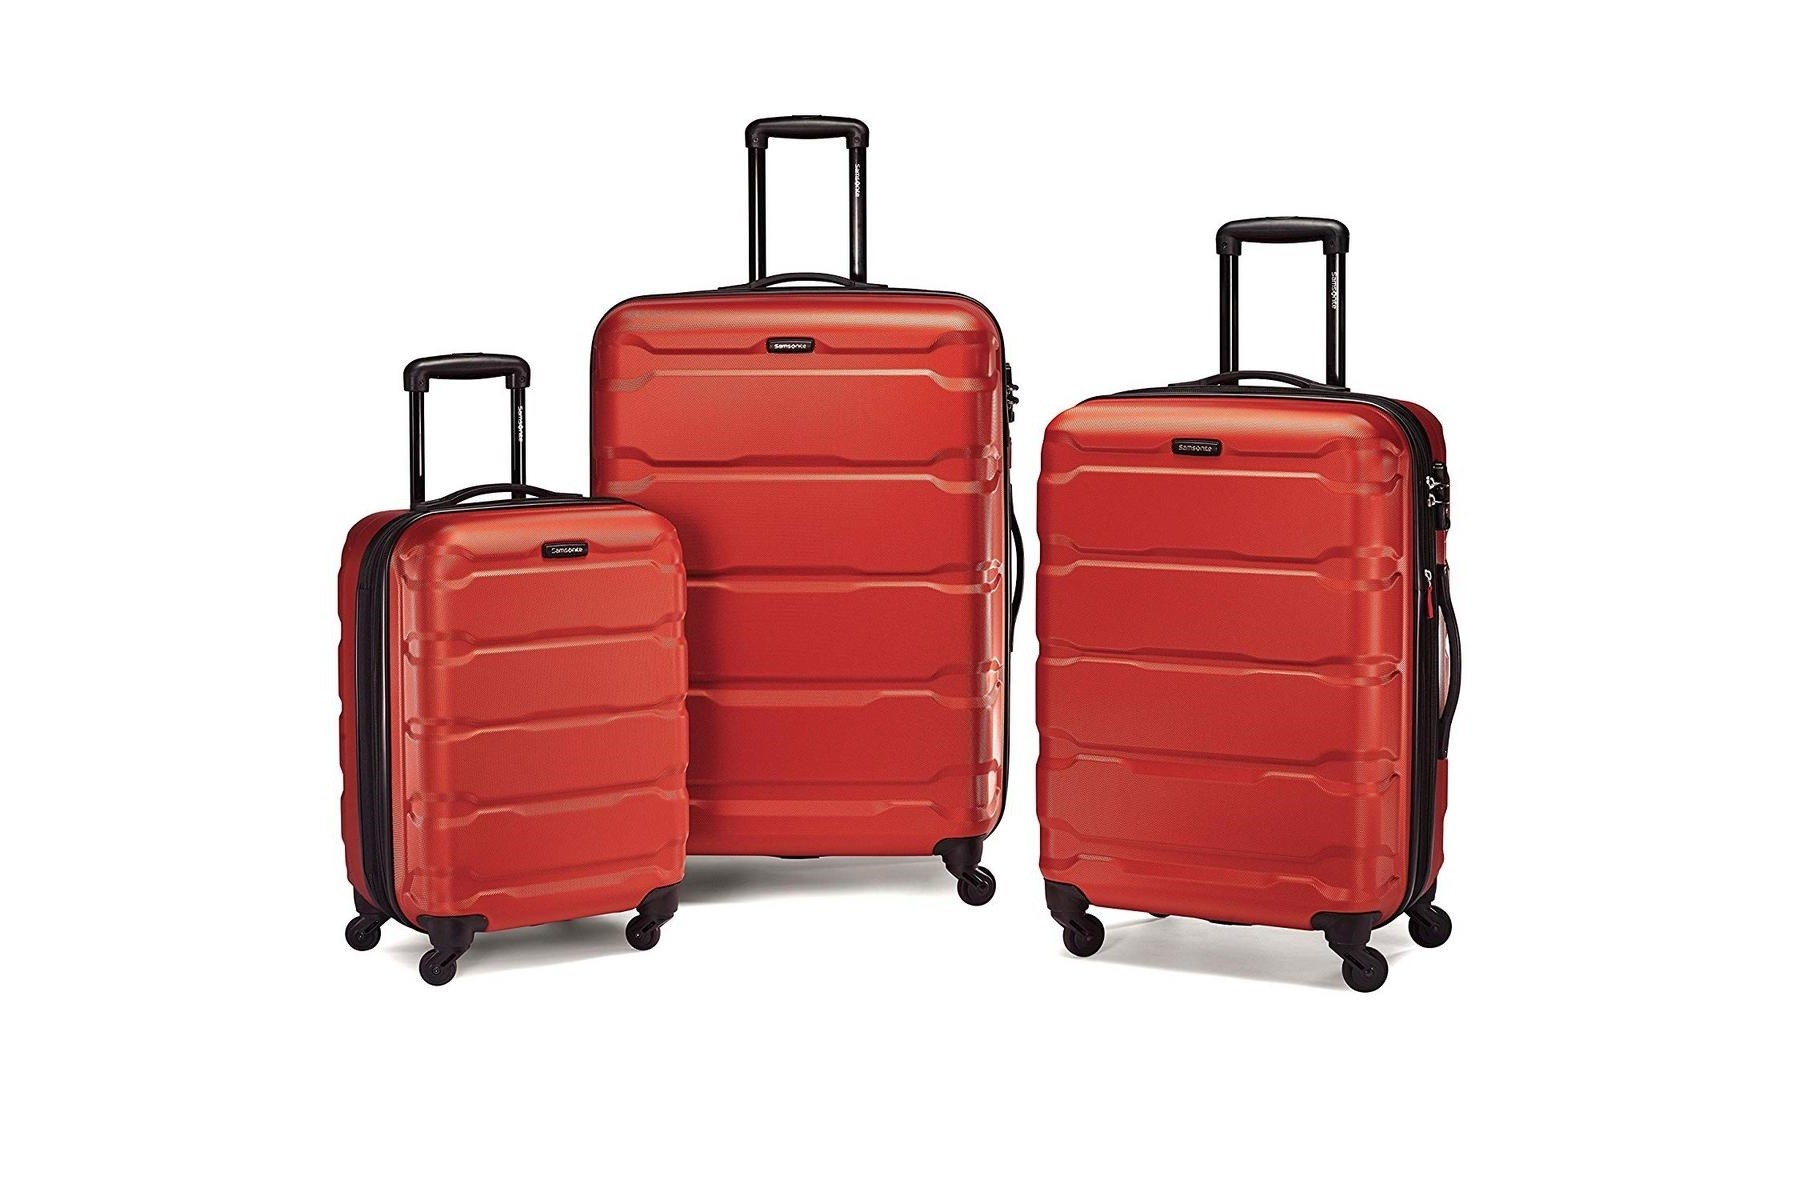 Best Luggage 2020.The Best Luggage For 2020 Best In Luggage Lonny